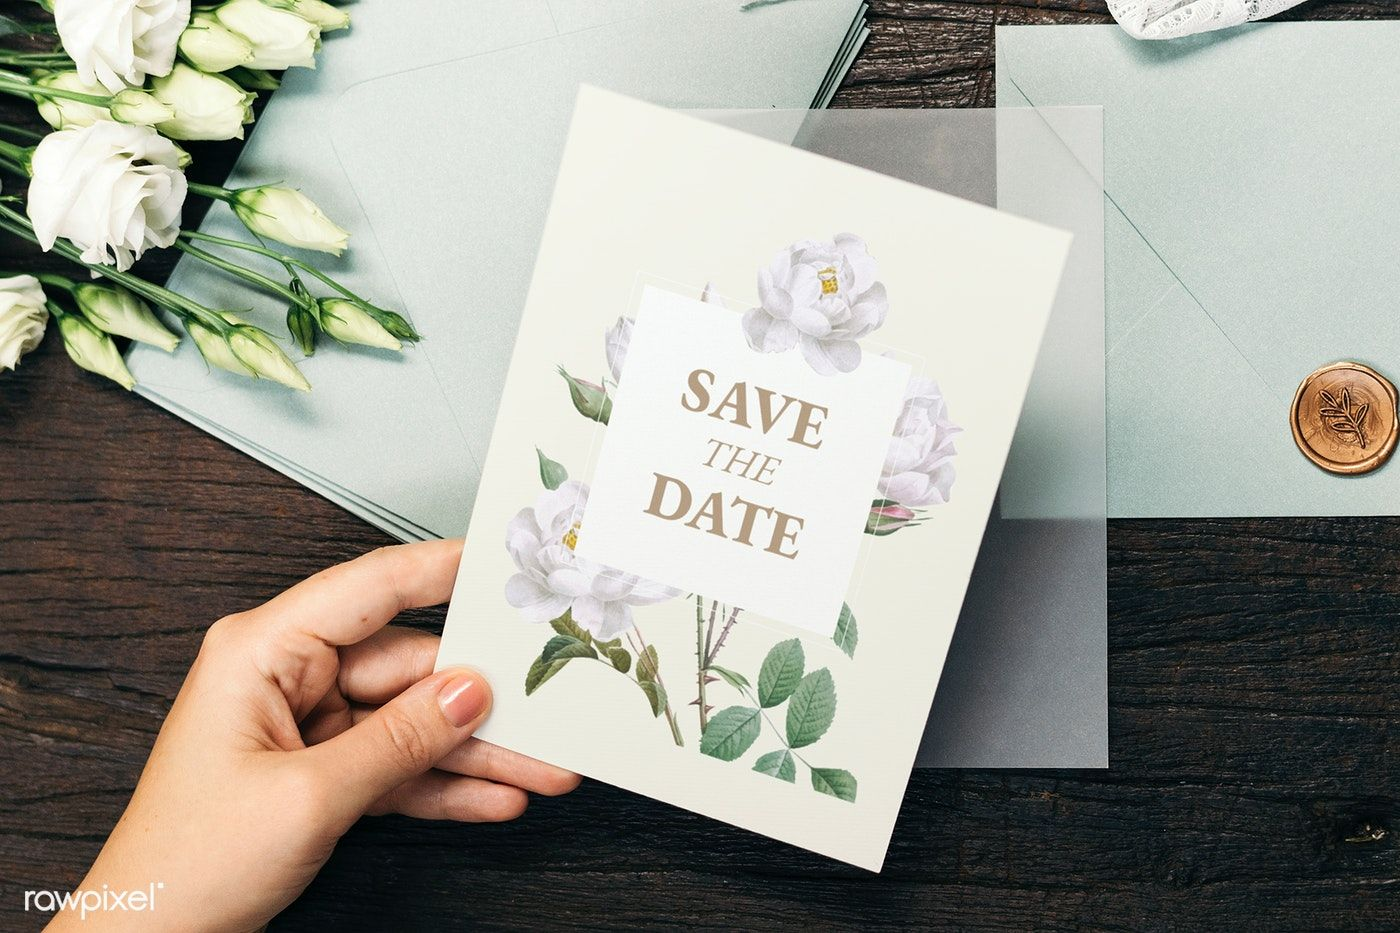 Download Premium Psd Of Woman With A Wedding Invitation Card Mockup 1209199 Wedding Invitation Cards Wedding Invitations Wedding Invitation Vector